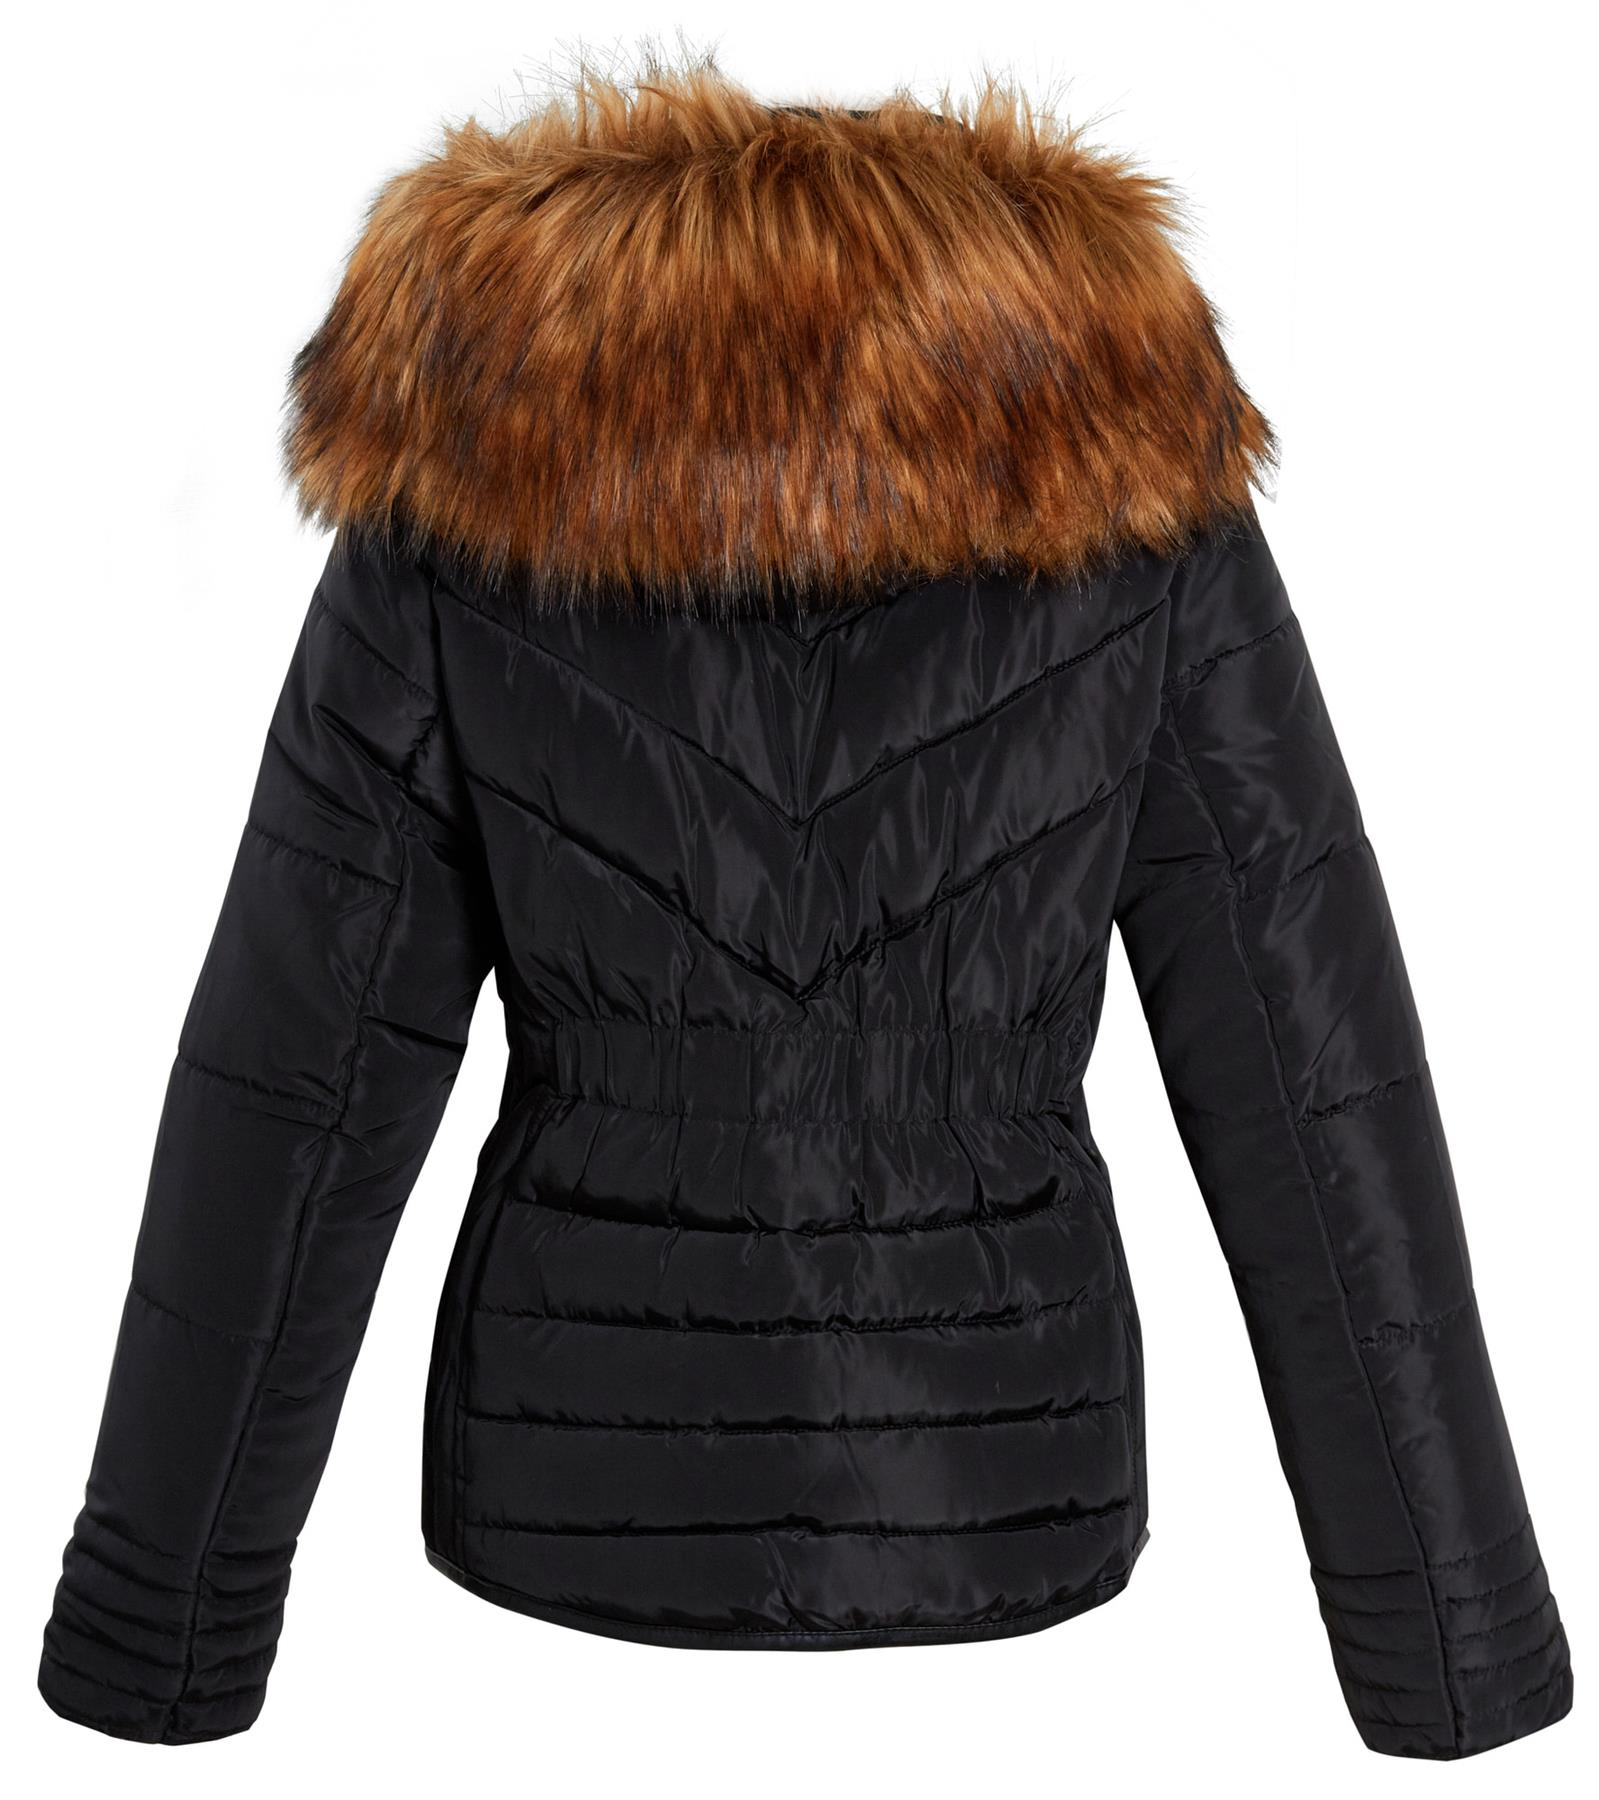 Shelikes-Womens-Ladies-Quilted-Padded-Winter-Warm-Fur-Parka-Jacket thumbnail 4